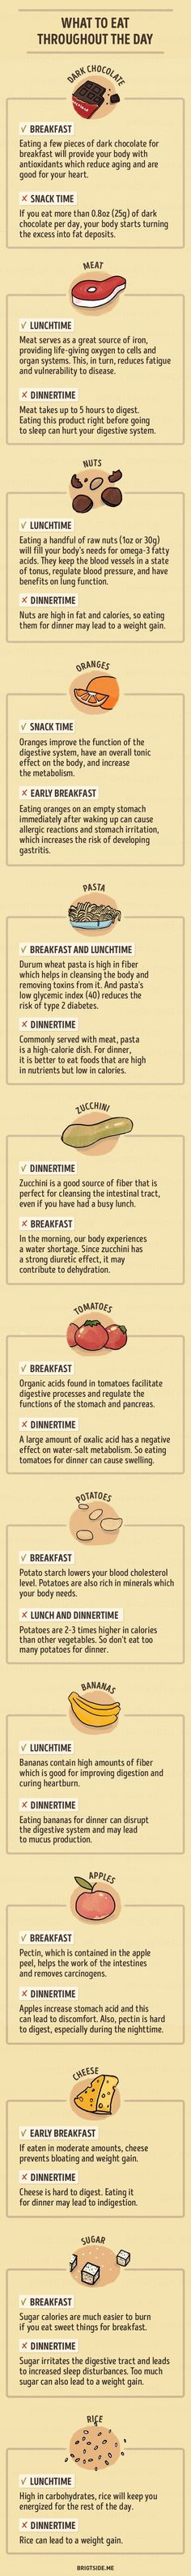 The best times of day to eat our favorite foods